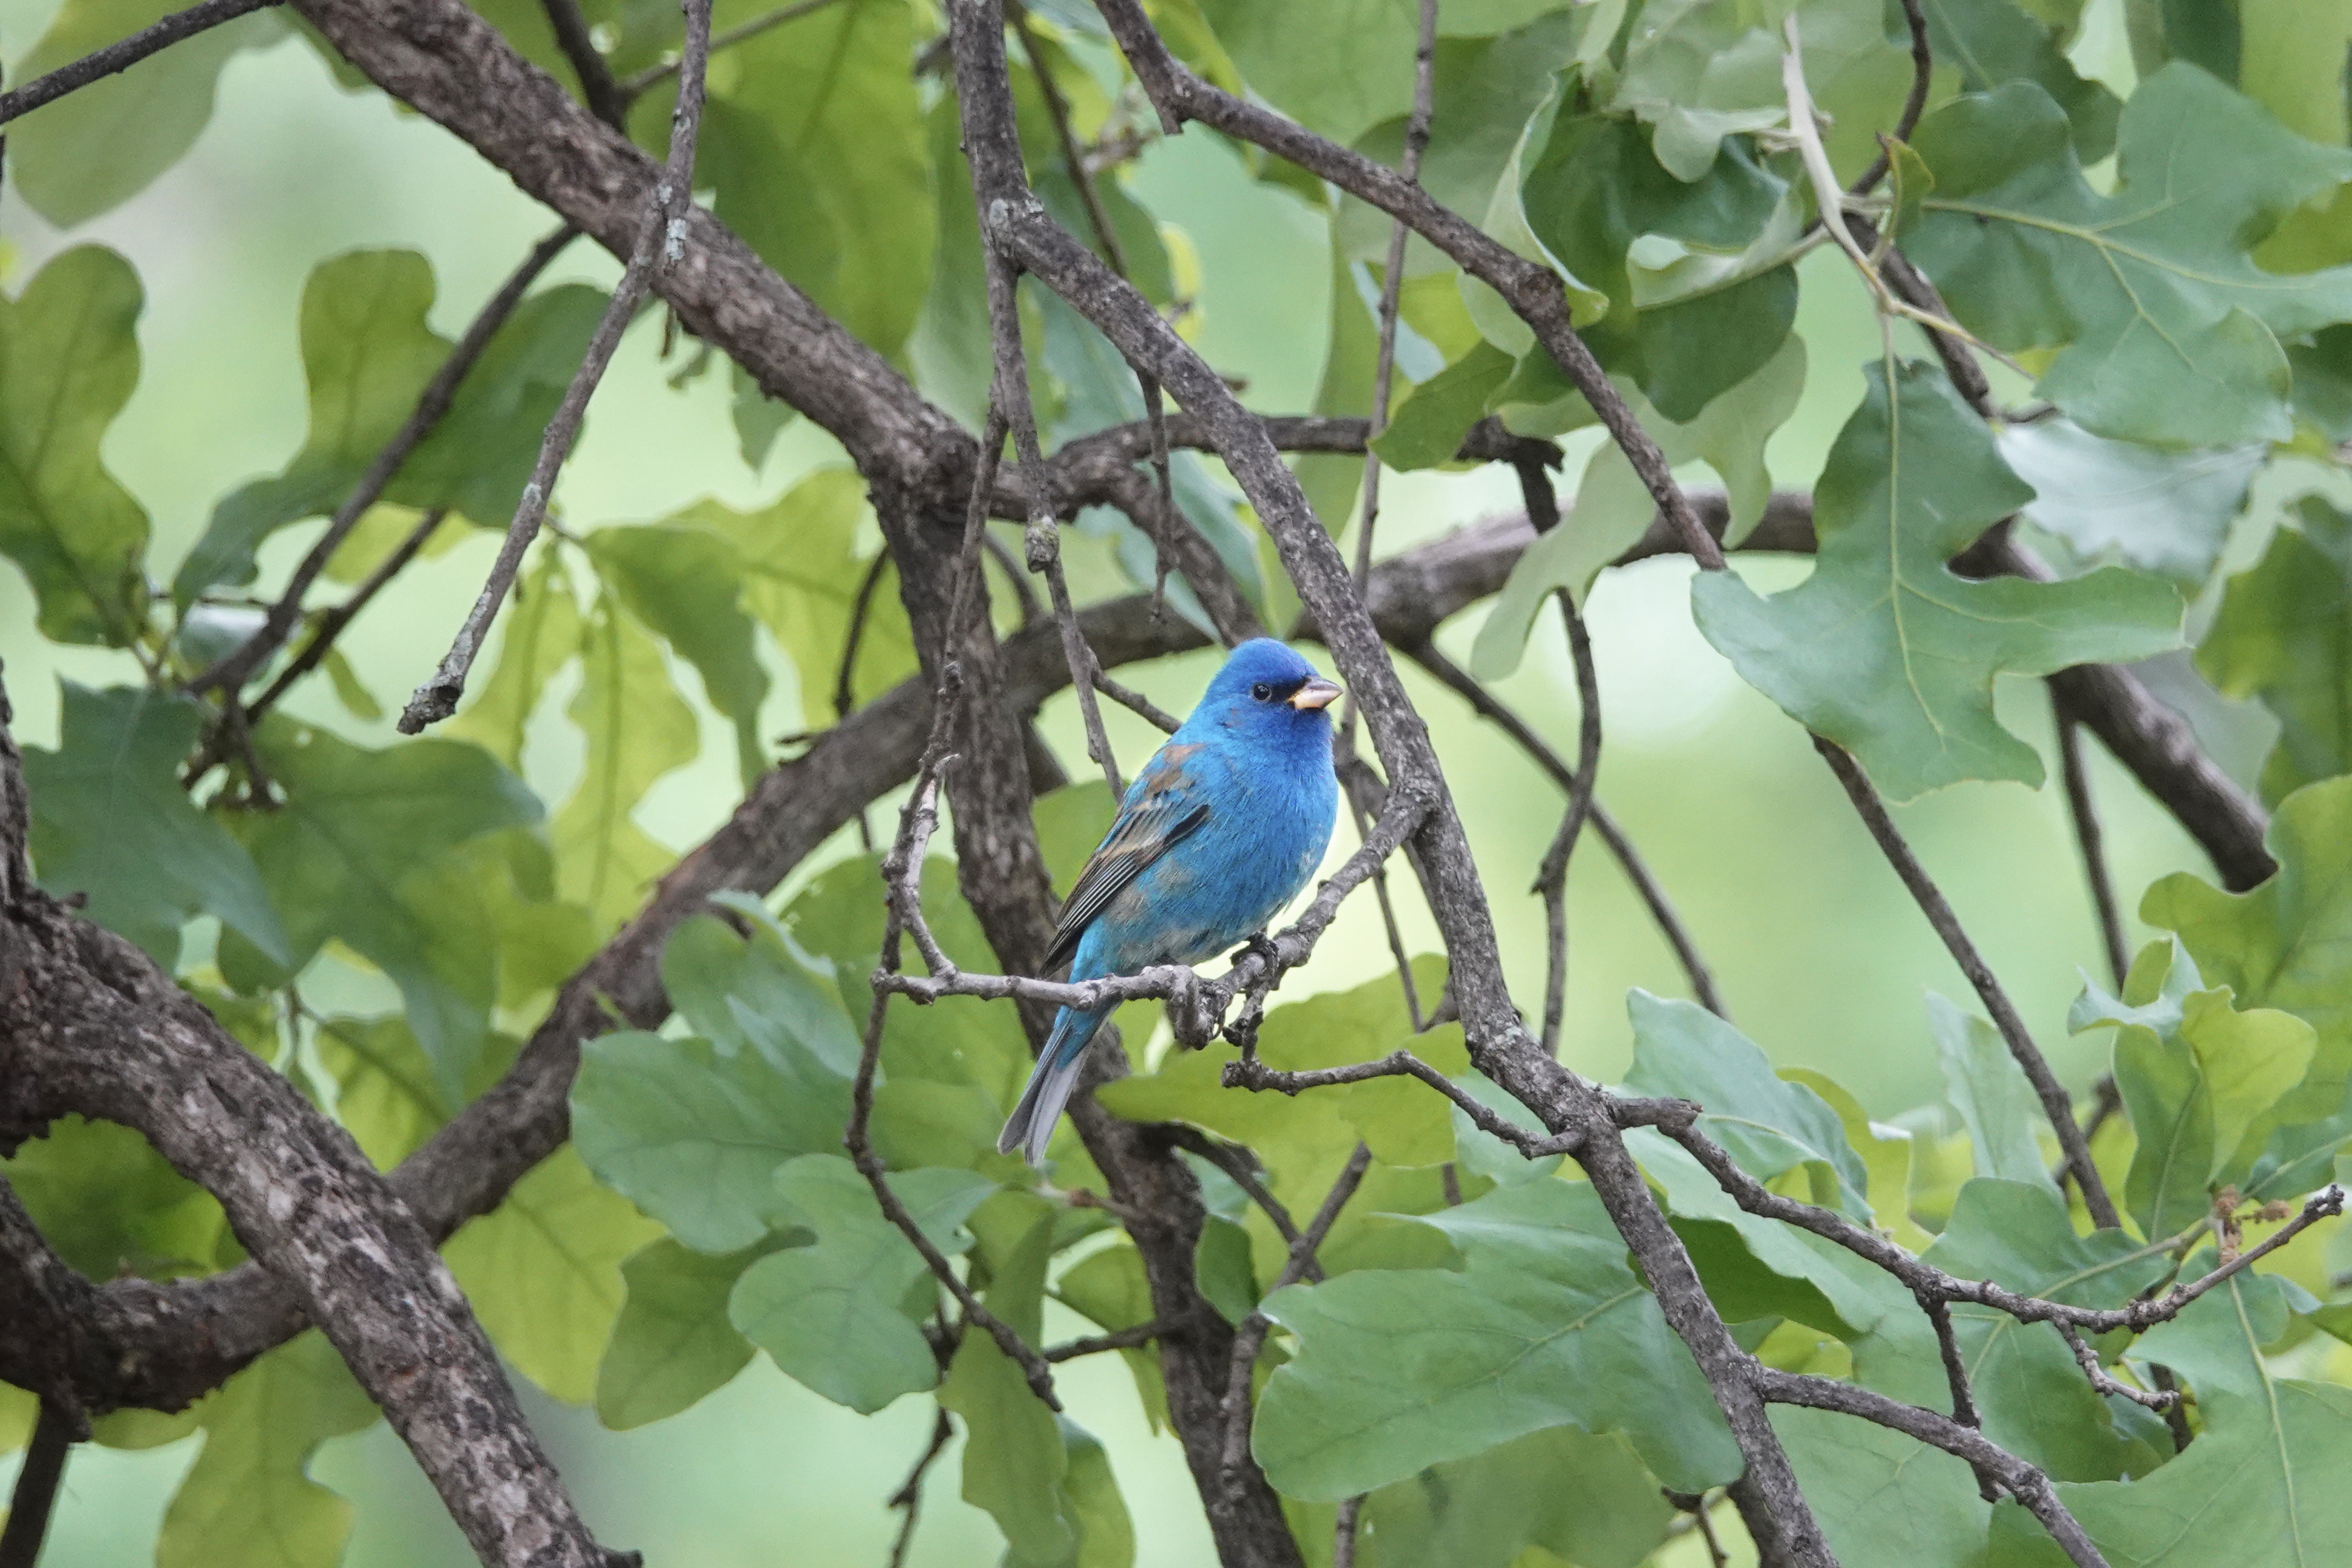 Divine Inspiration Photo #29A - Indigo Bunting in Tree - 8 x 10